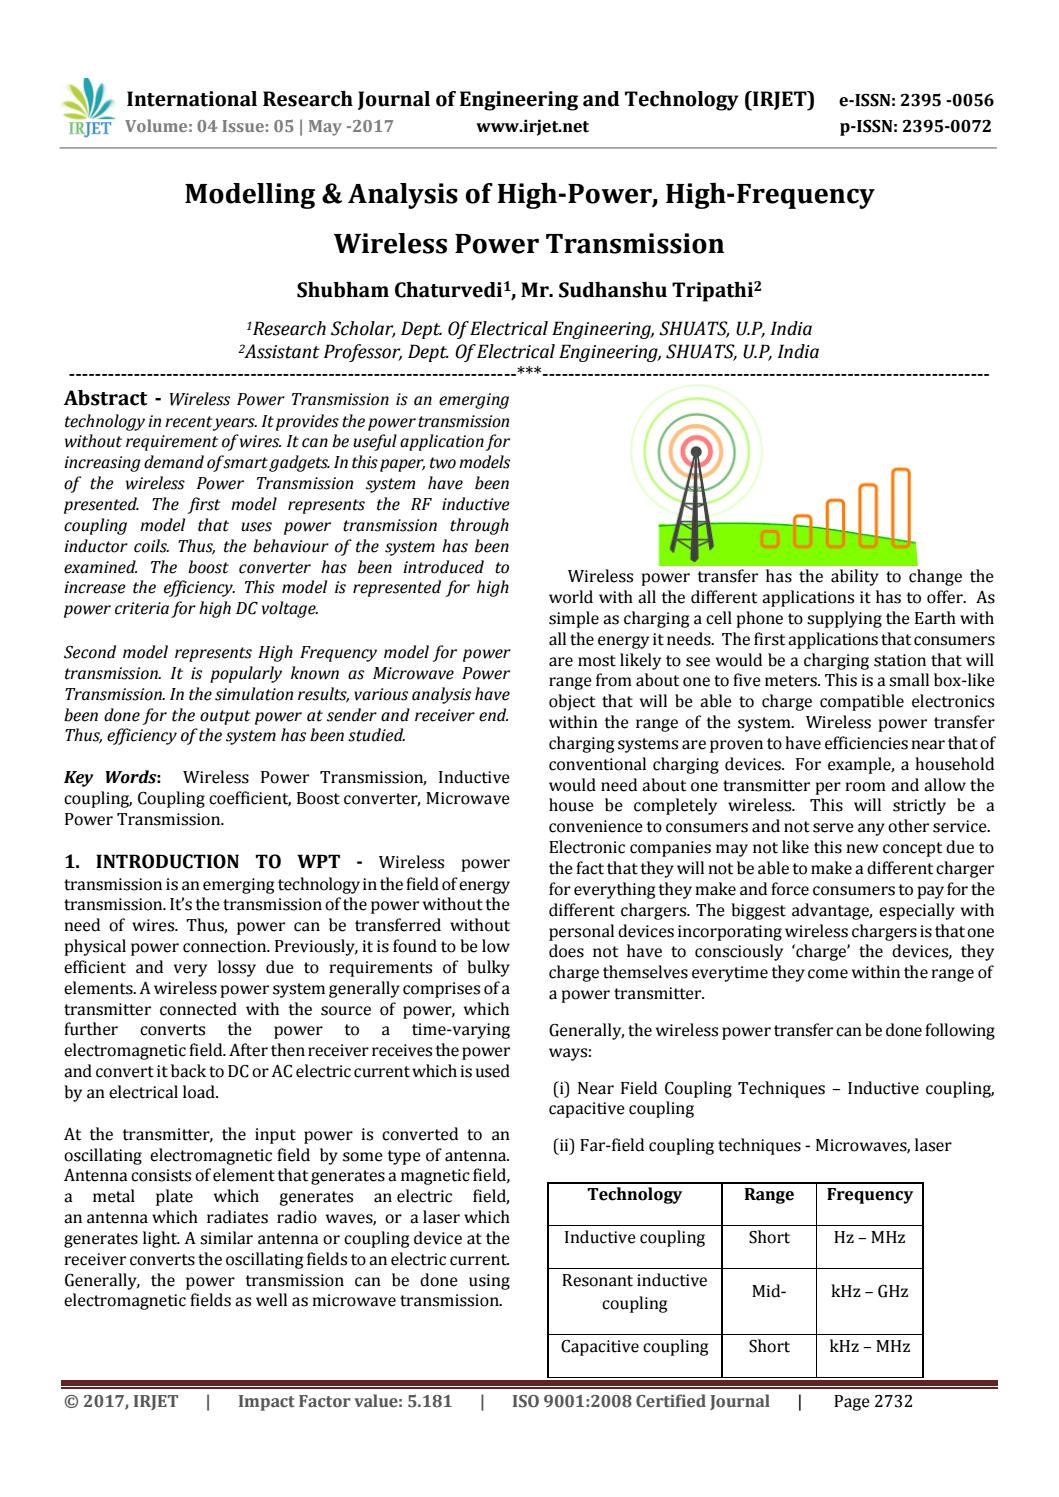 Modelling & Analysis of High-Power , High-Frequency Wireless Power